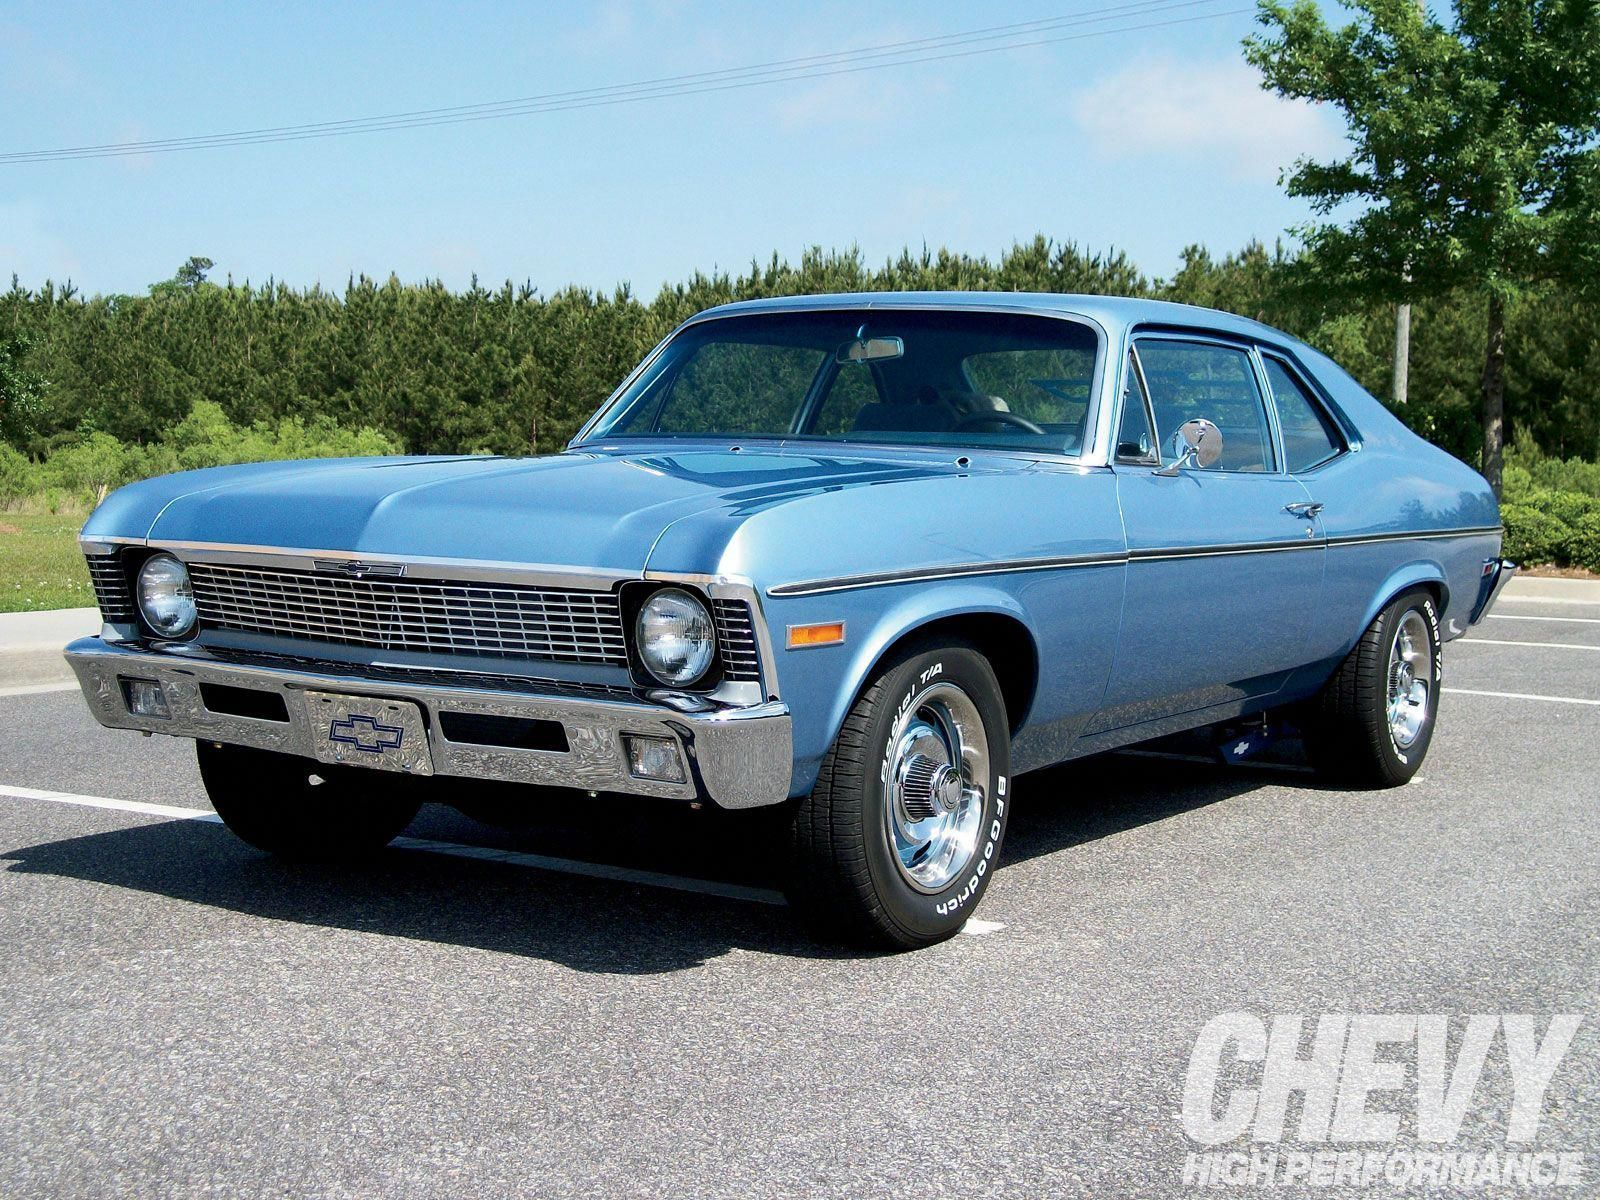 Chevy Nova Muscle Cars For Sale Chevy Nova Muscle Cars Sale